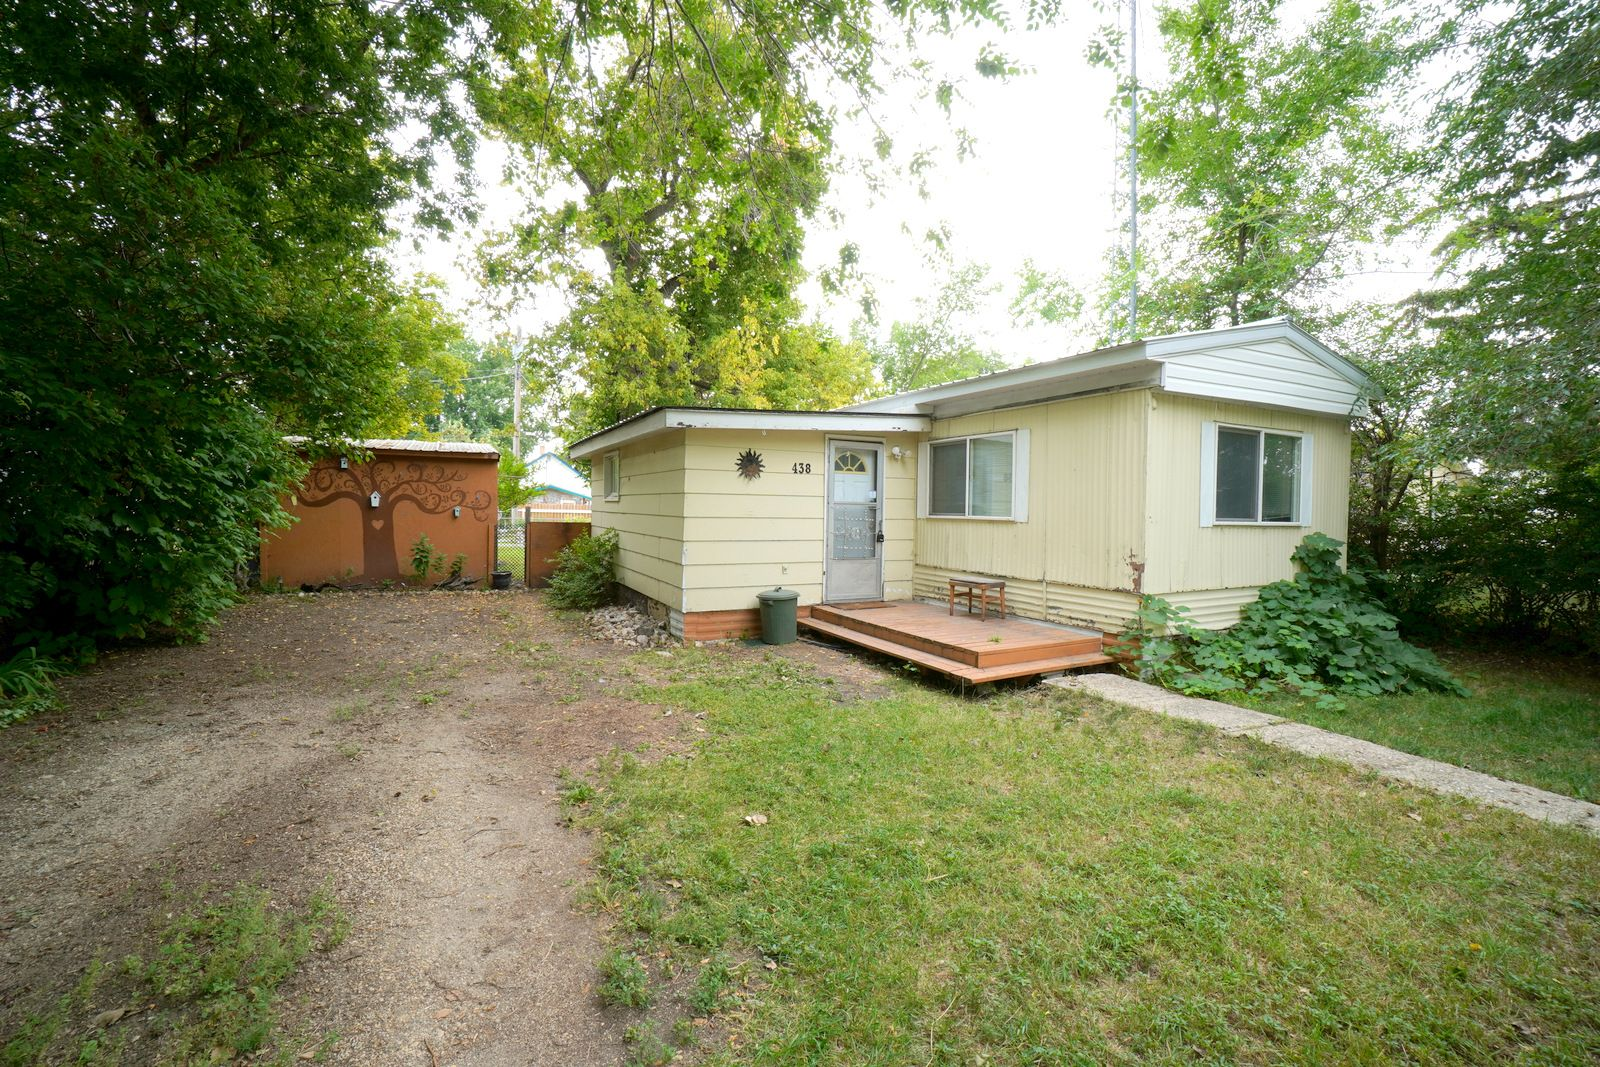 Main Photo: 438 2nd St NW in Portage la Prairie: House for sale : MLS®# 202120635